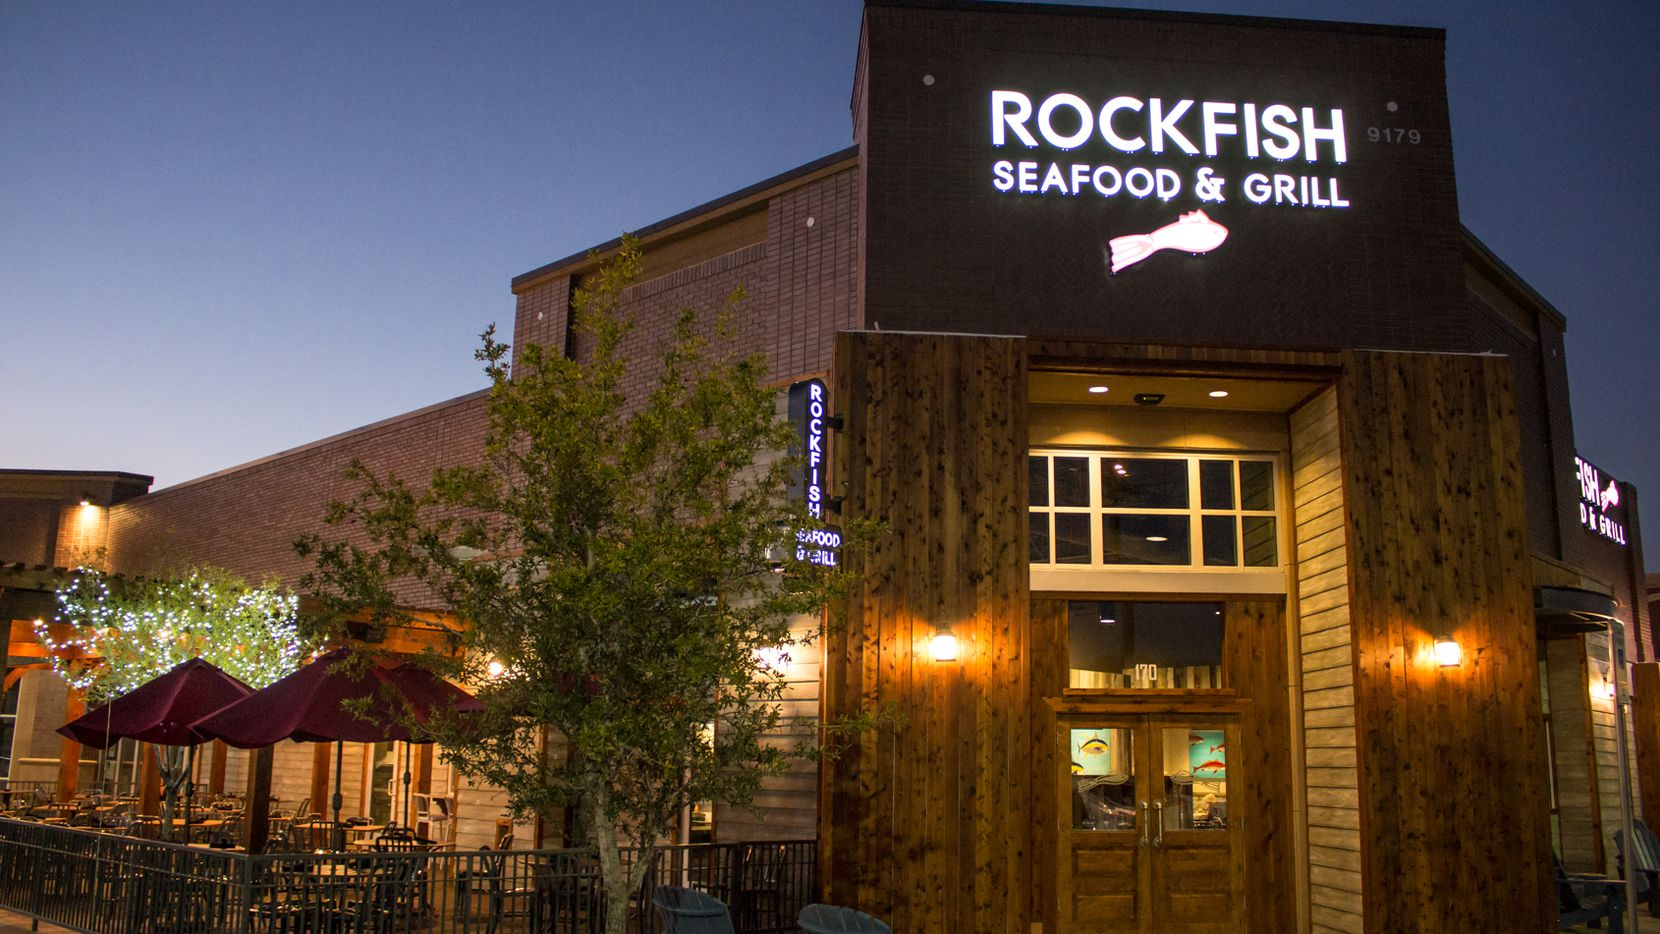 The Rockfish Seafood Grill in Frisco also attains the company's updated look.